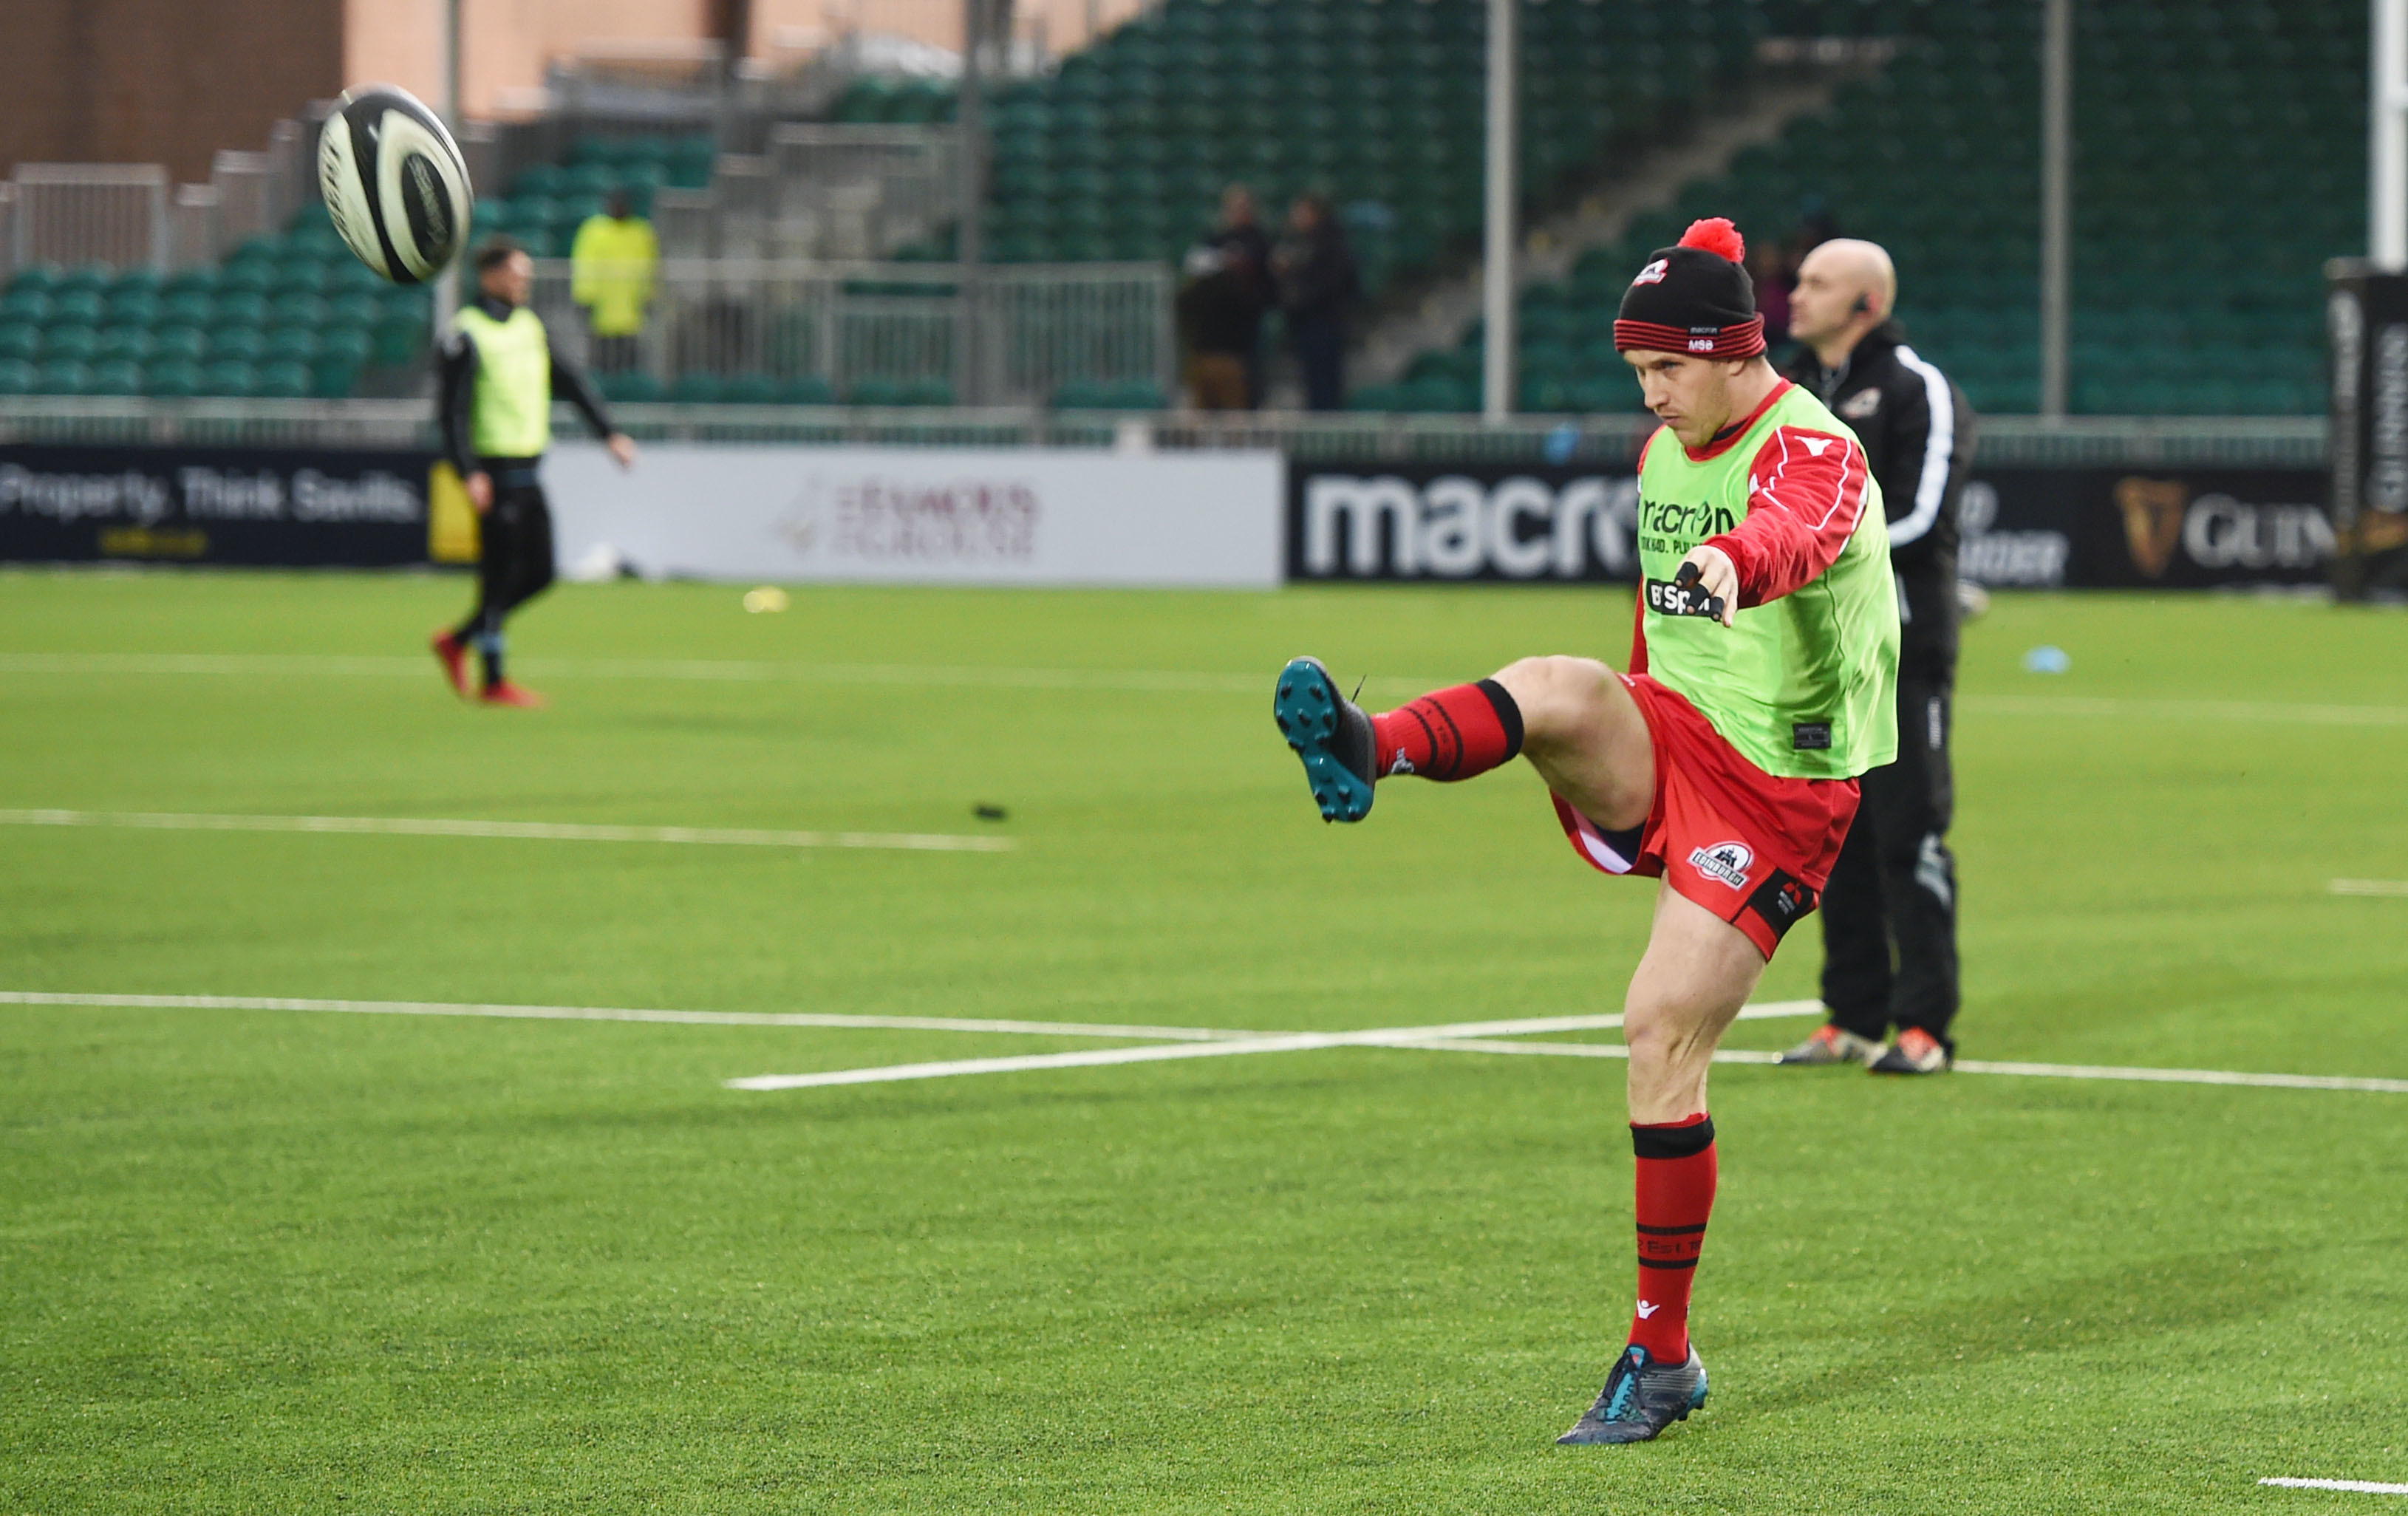 Mark Bennett gets in some kicking practice during training with Edinburgh at Myreside.